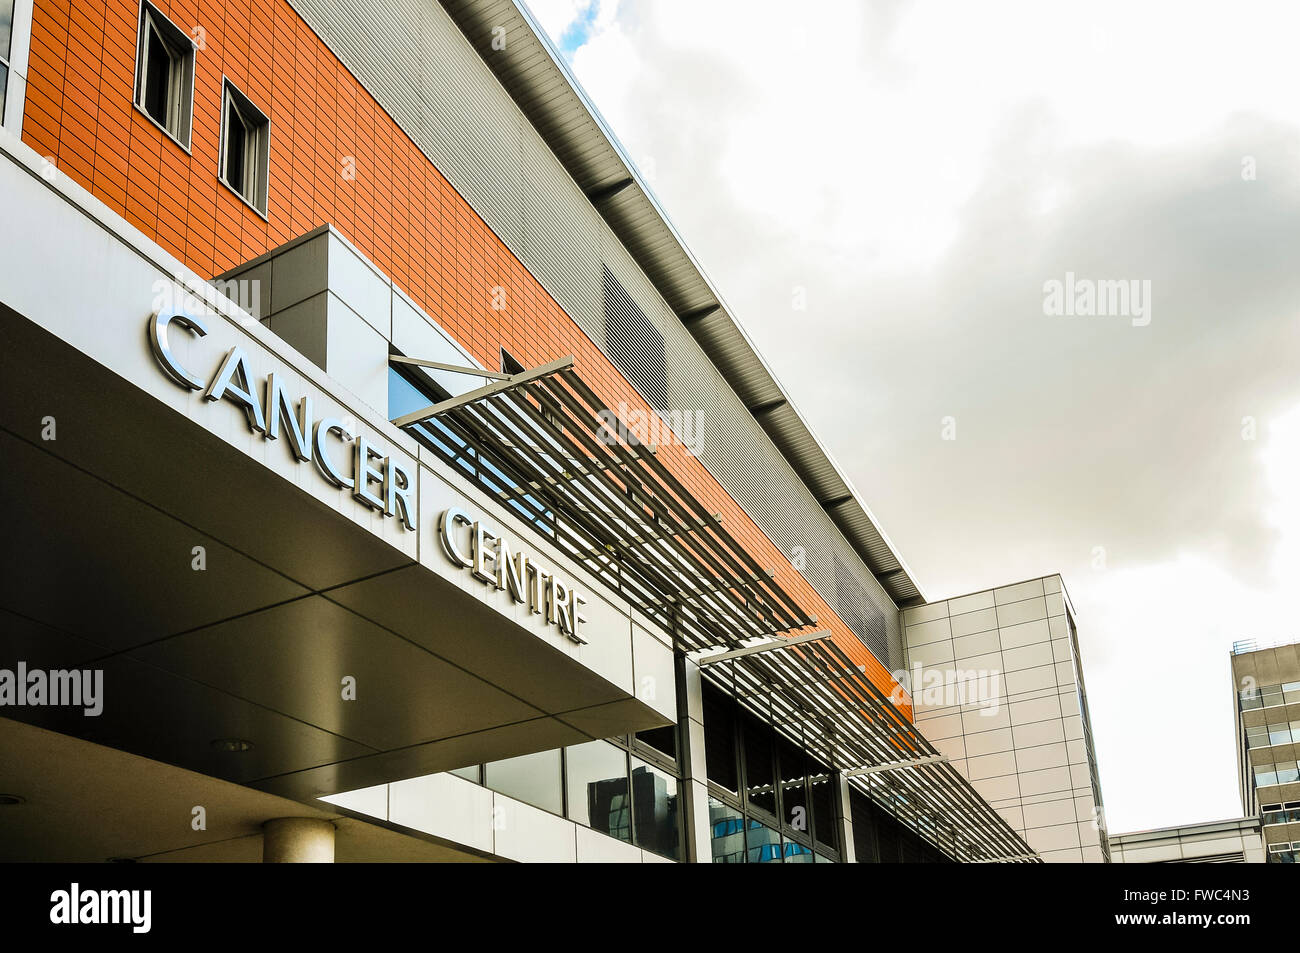 Northern Ireland Cancer Centre at the Belfast City Hospital. - Stock Image